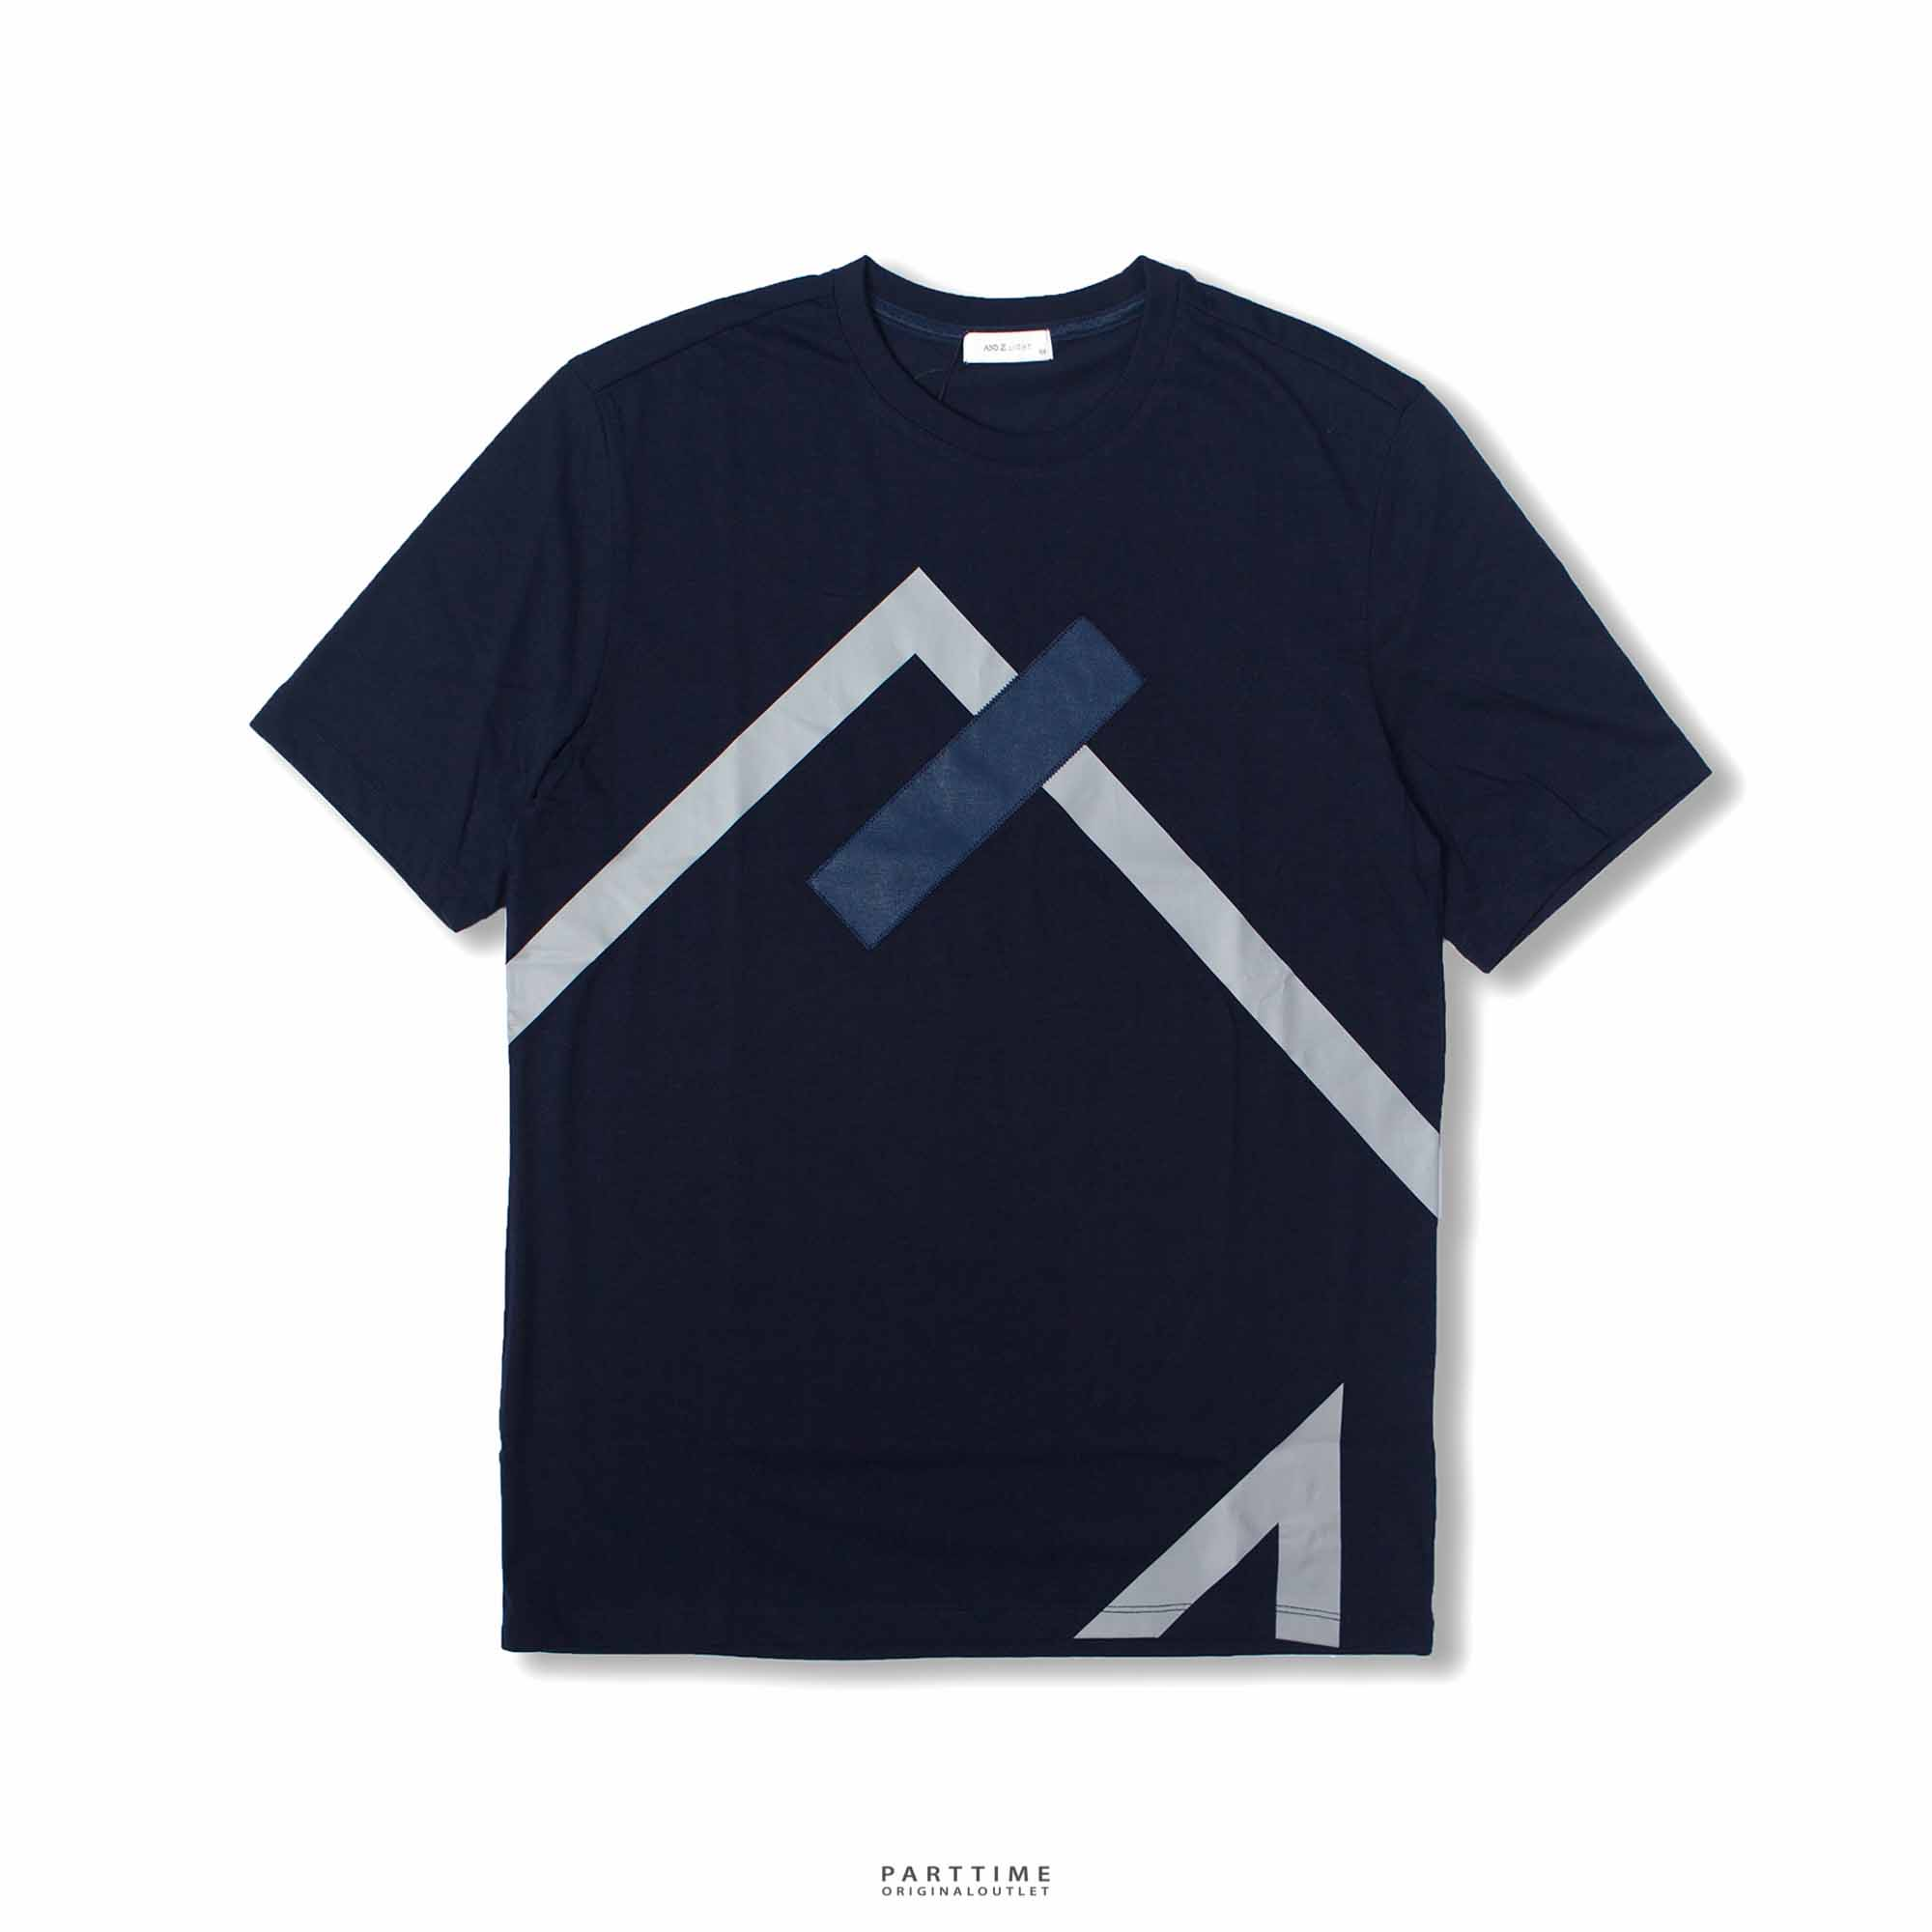 AND Z LIGHT - Navy 02